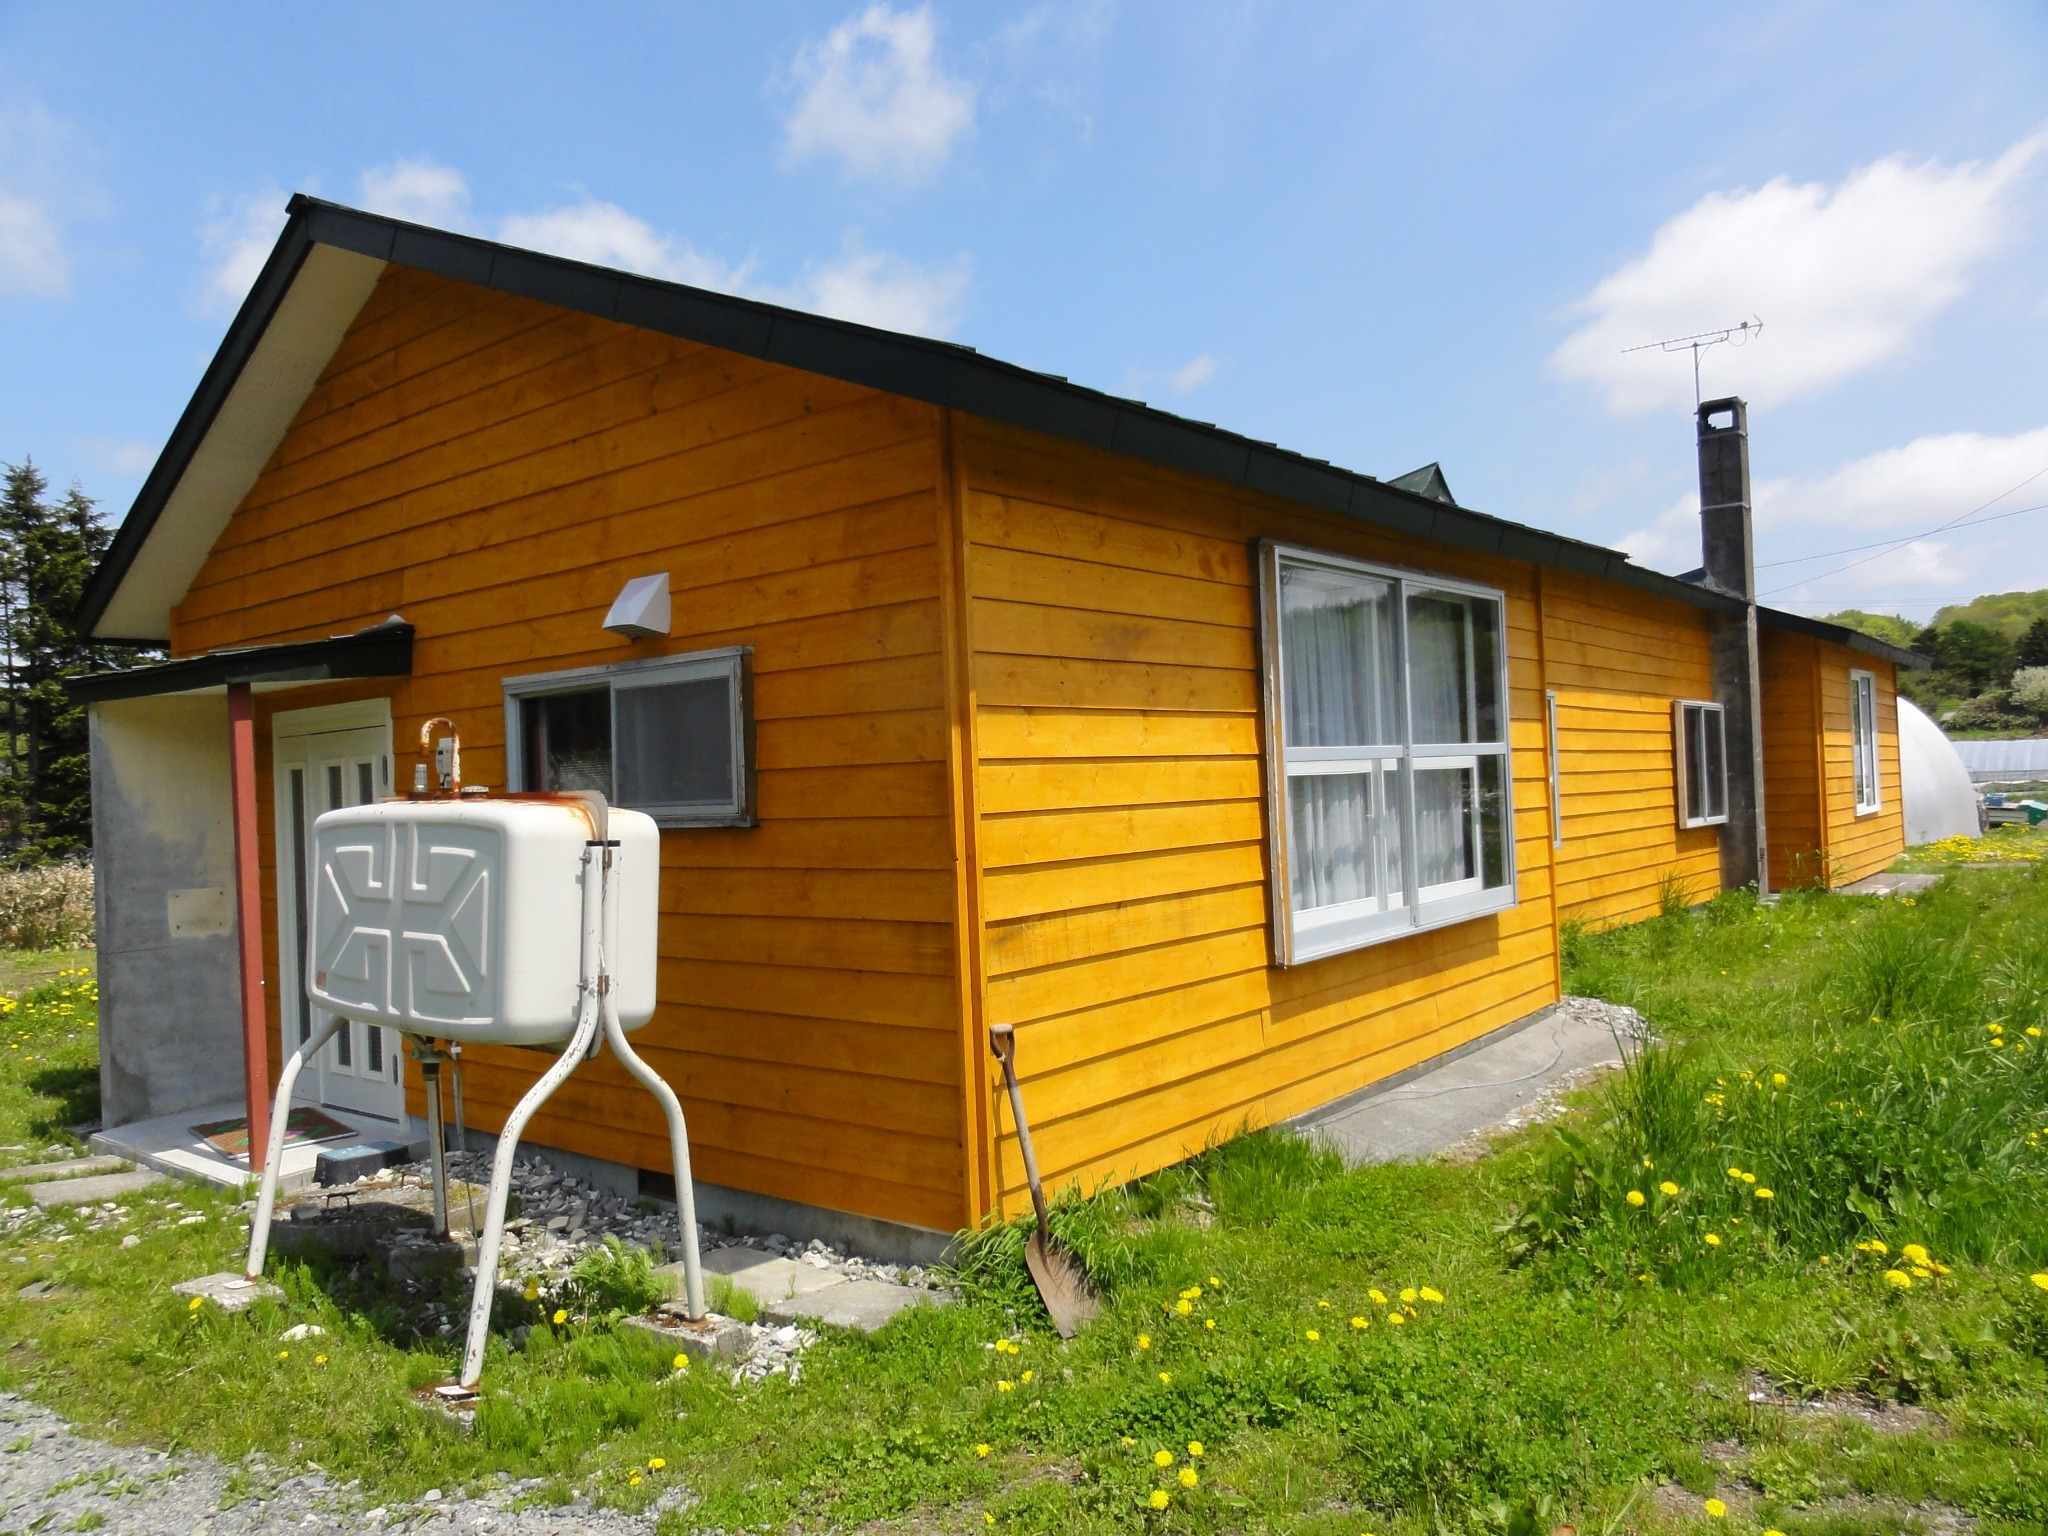 【Cottage】1 Kitchen + 1 Living room + 2 Bed room + Bathroom + toilet (with bidet functions). There are two kinds of cottages (A and B).